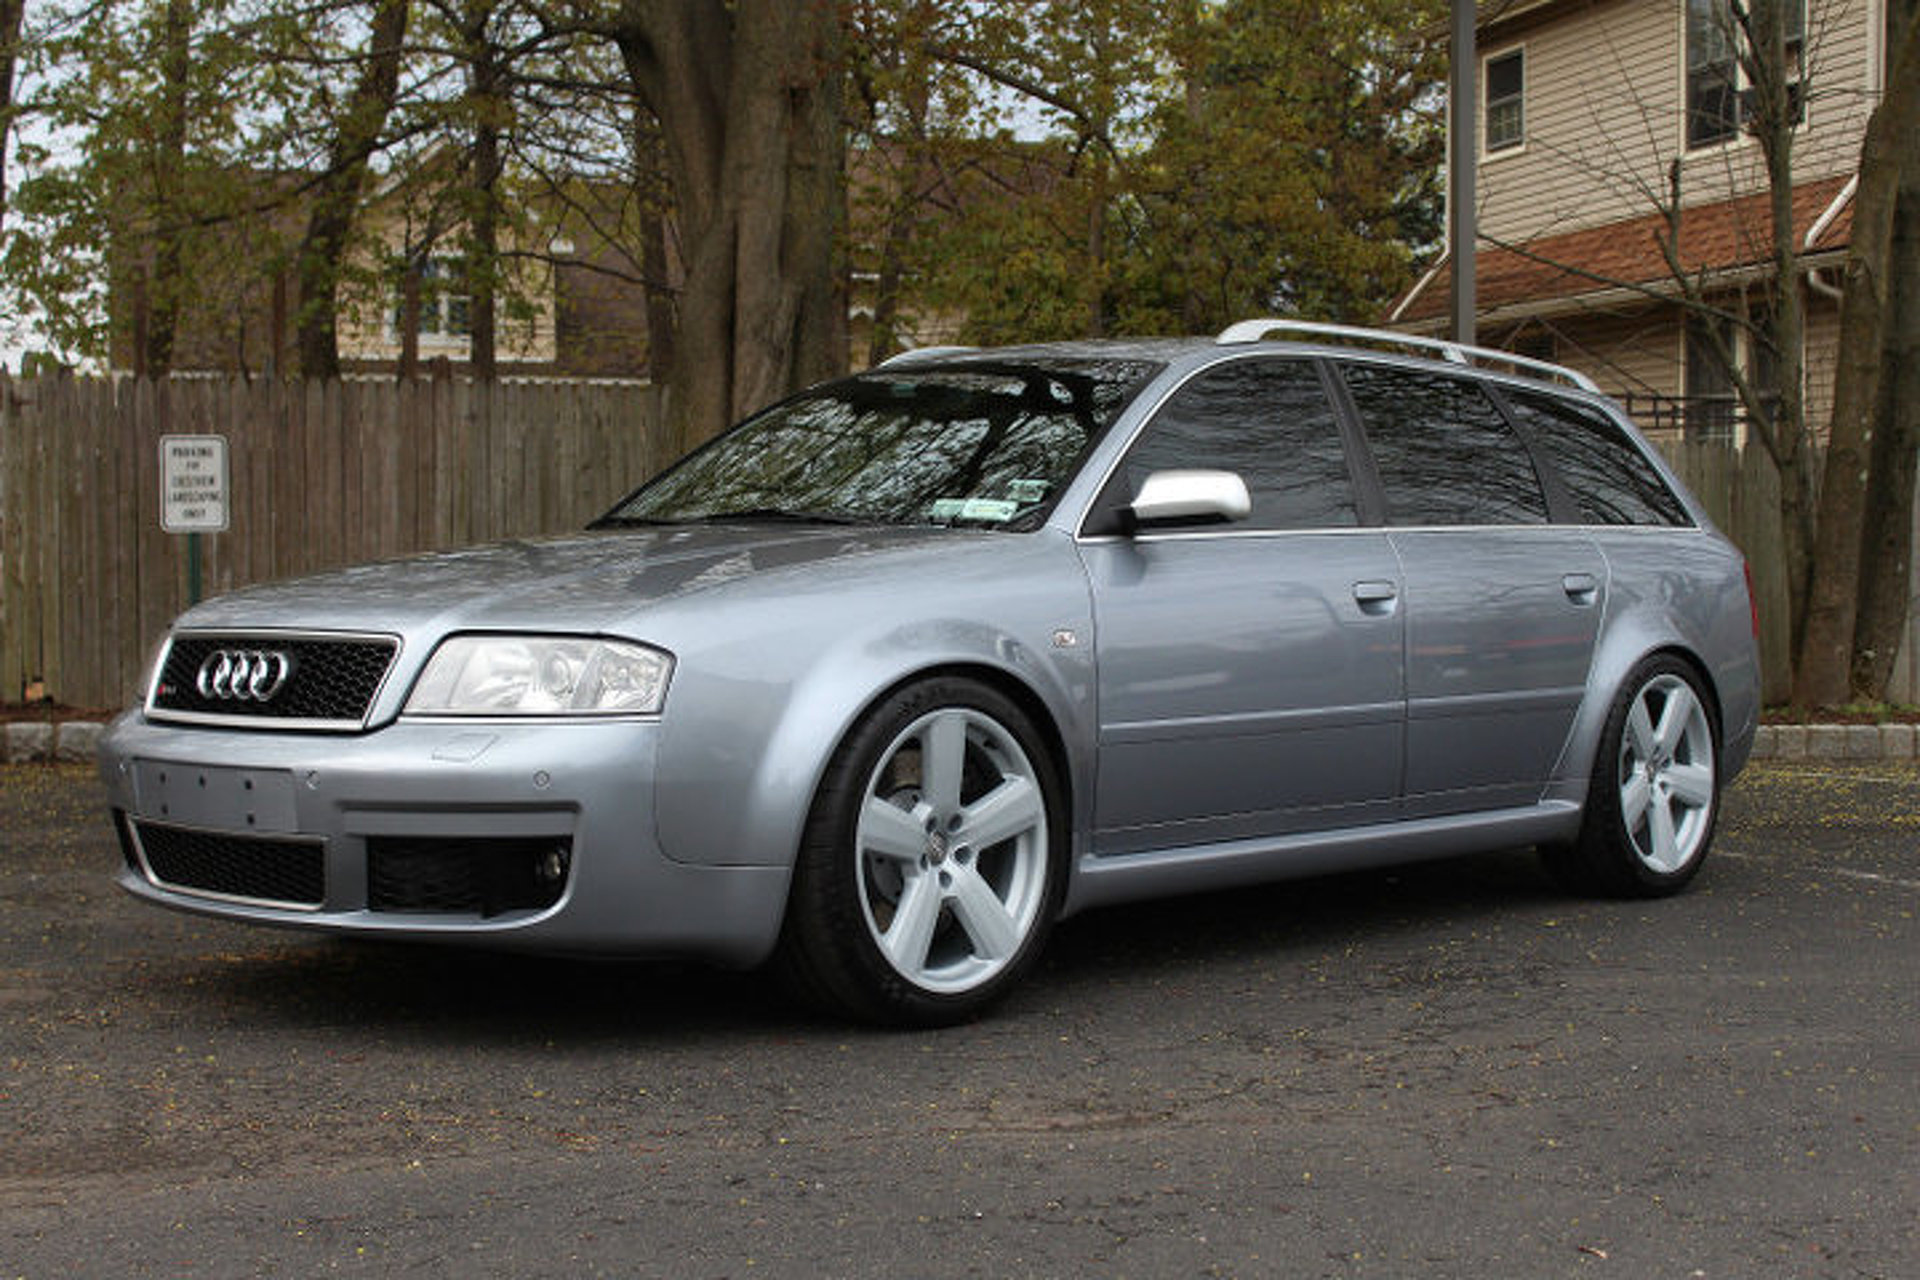 Paul Walker's Audi RS6 Avant For Sale on eBay